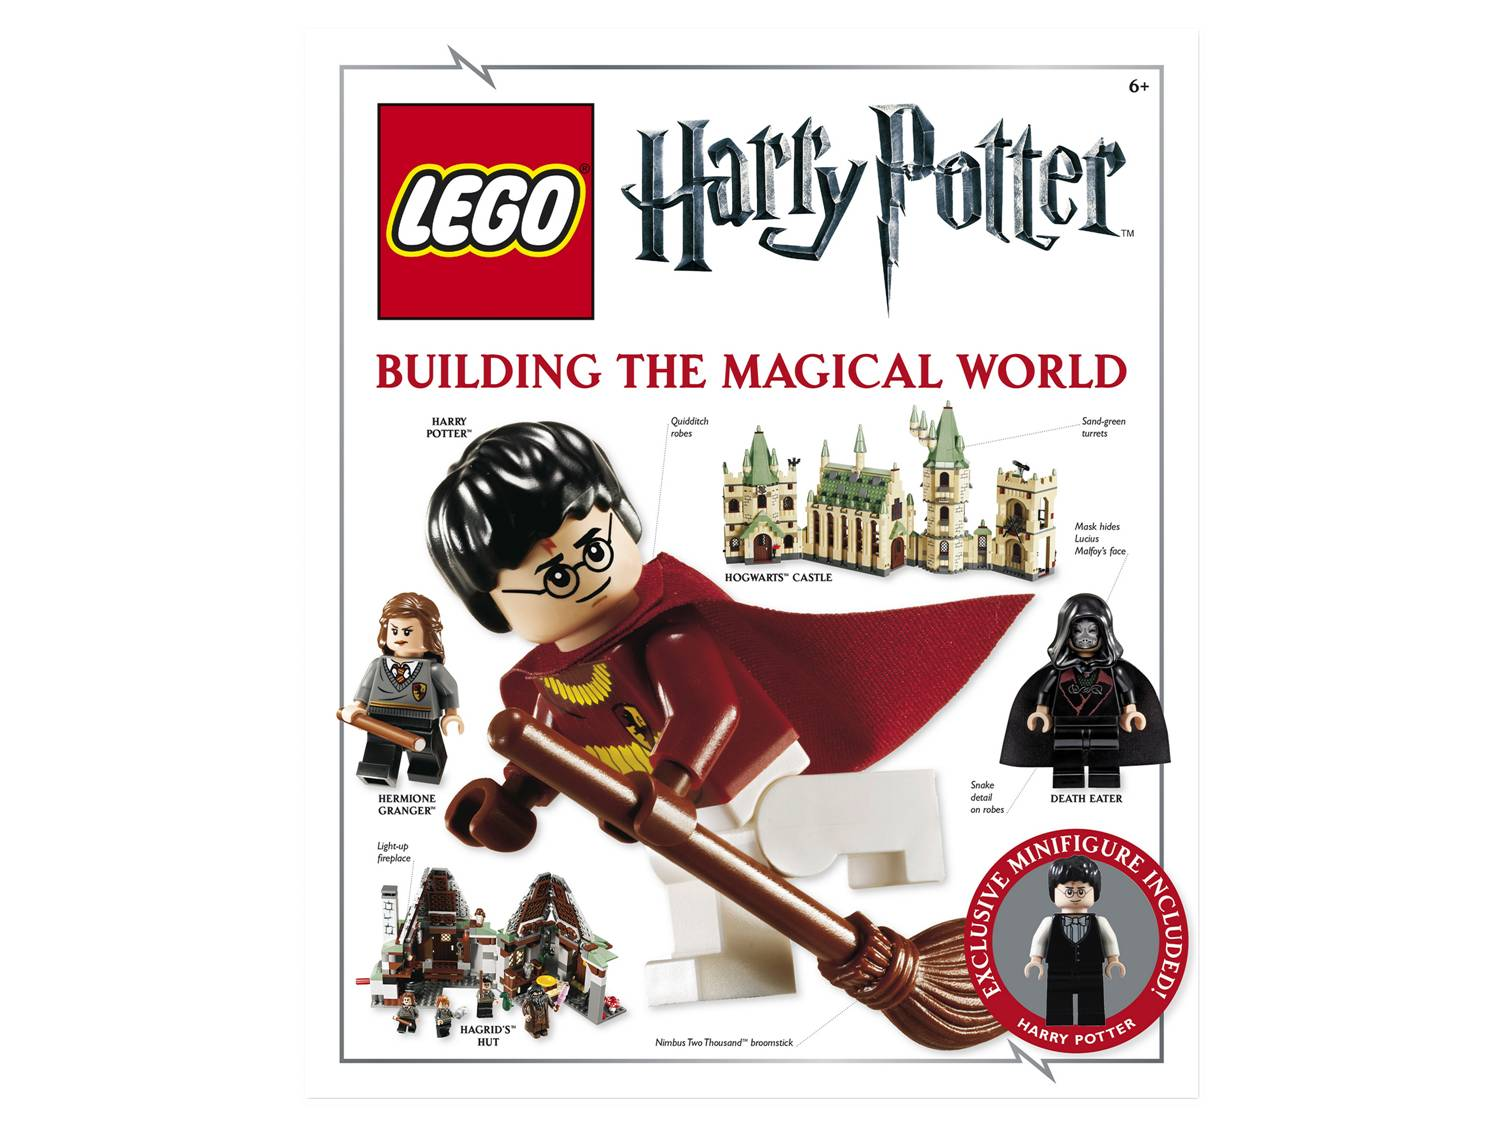 5000215 LEGO Harry Potter: Building the Magical World | Brickipedia ...